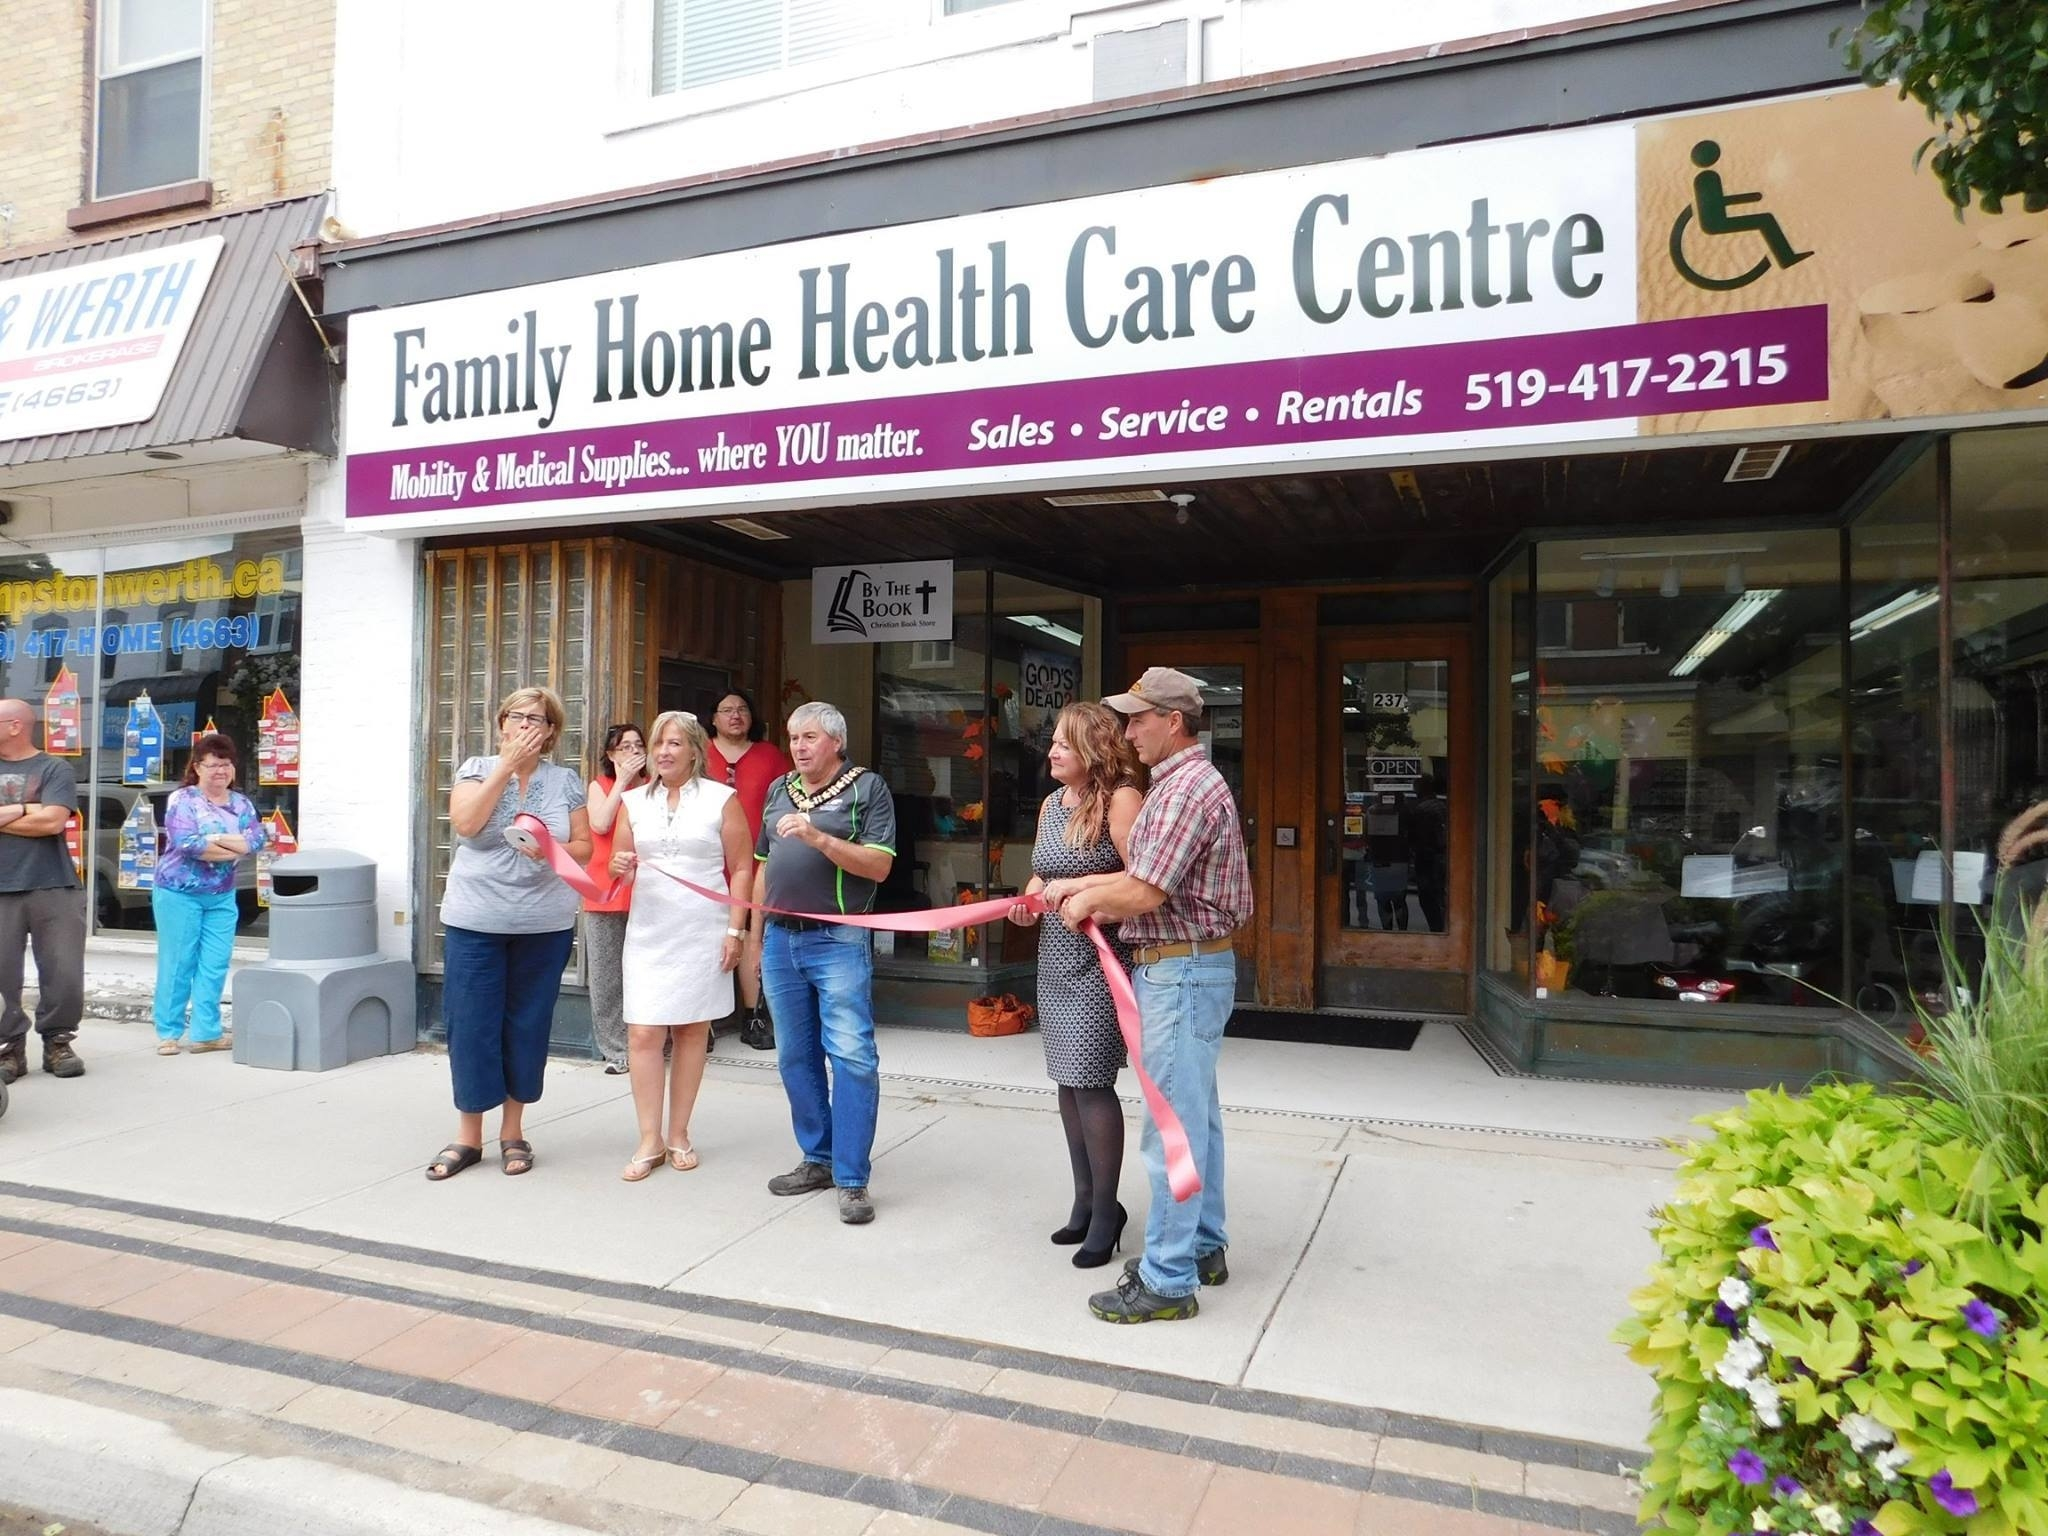 Family Home Health Care Centre Opening Hours 237 Main St W Palmerston On